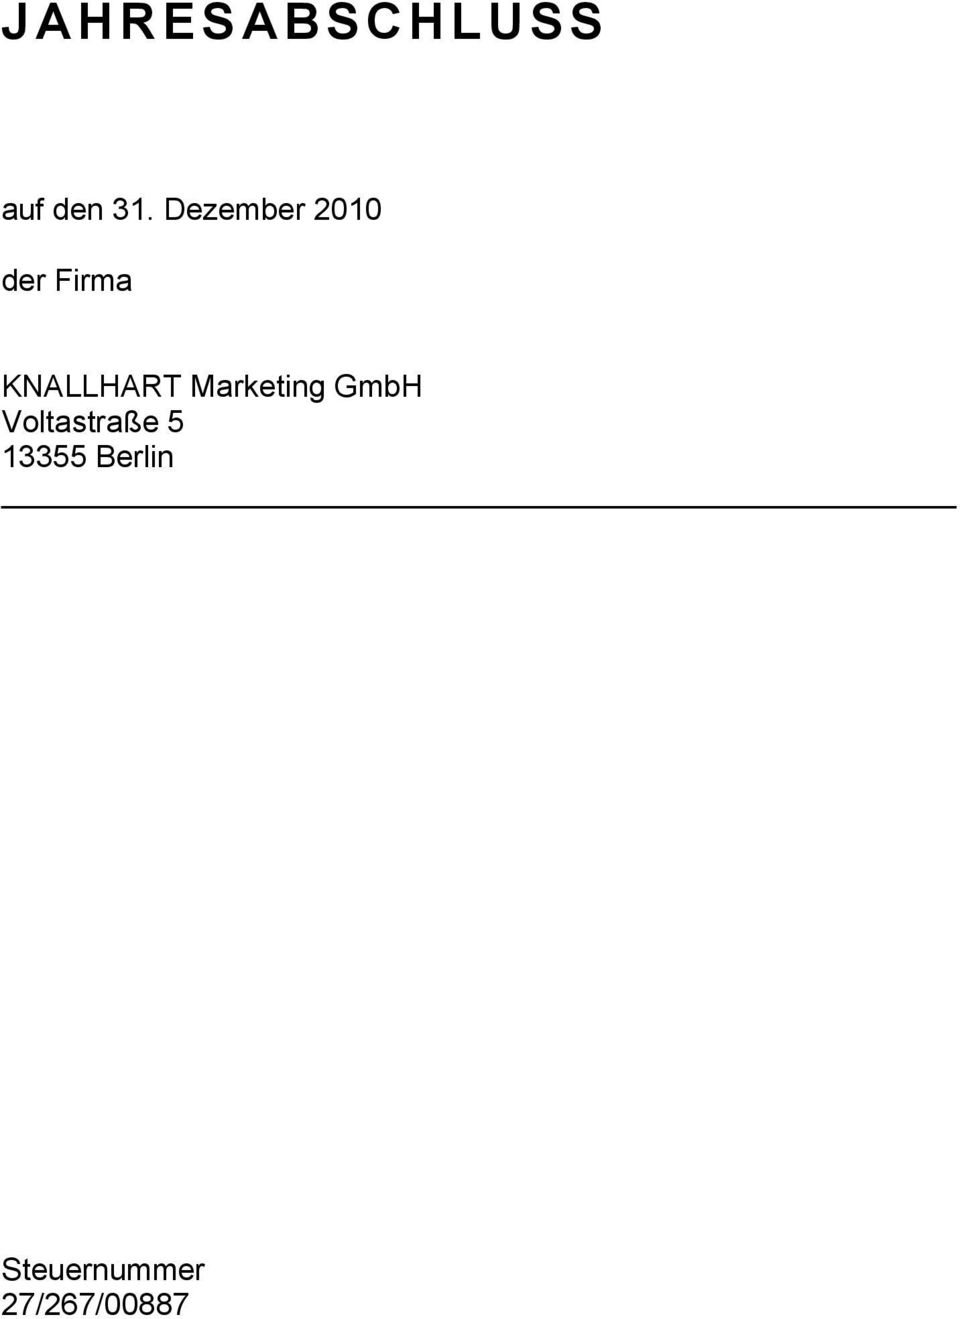 KNALLHART Marketing GmbH